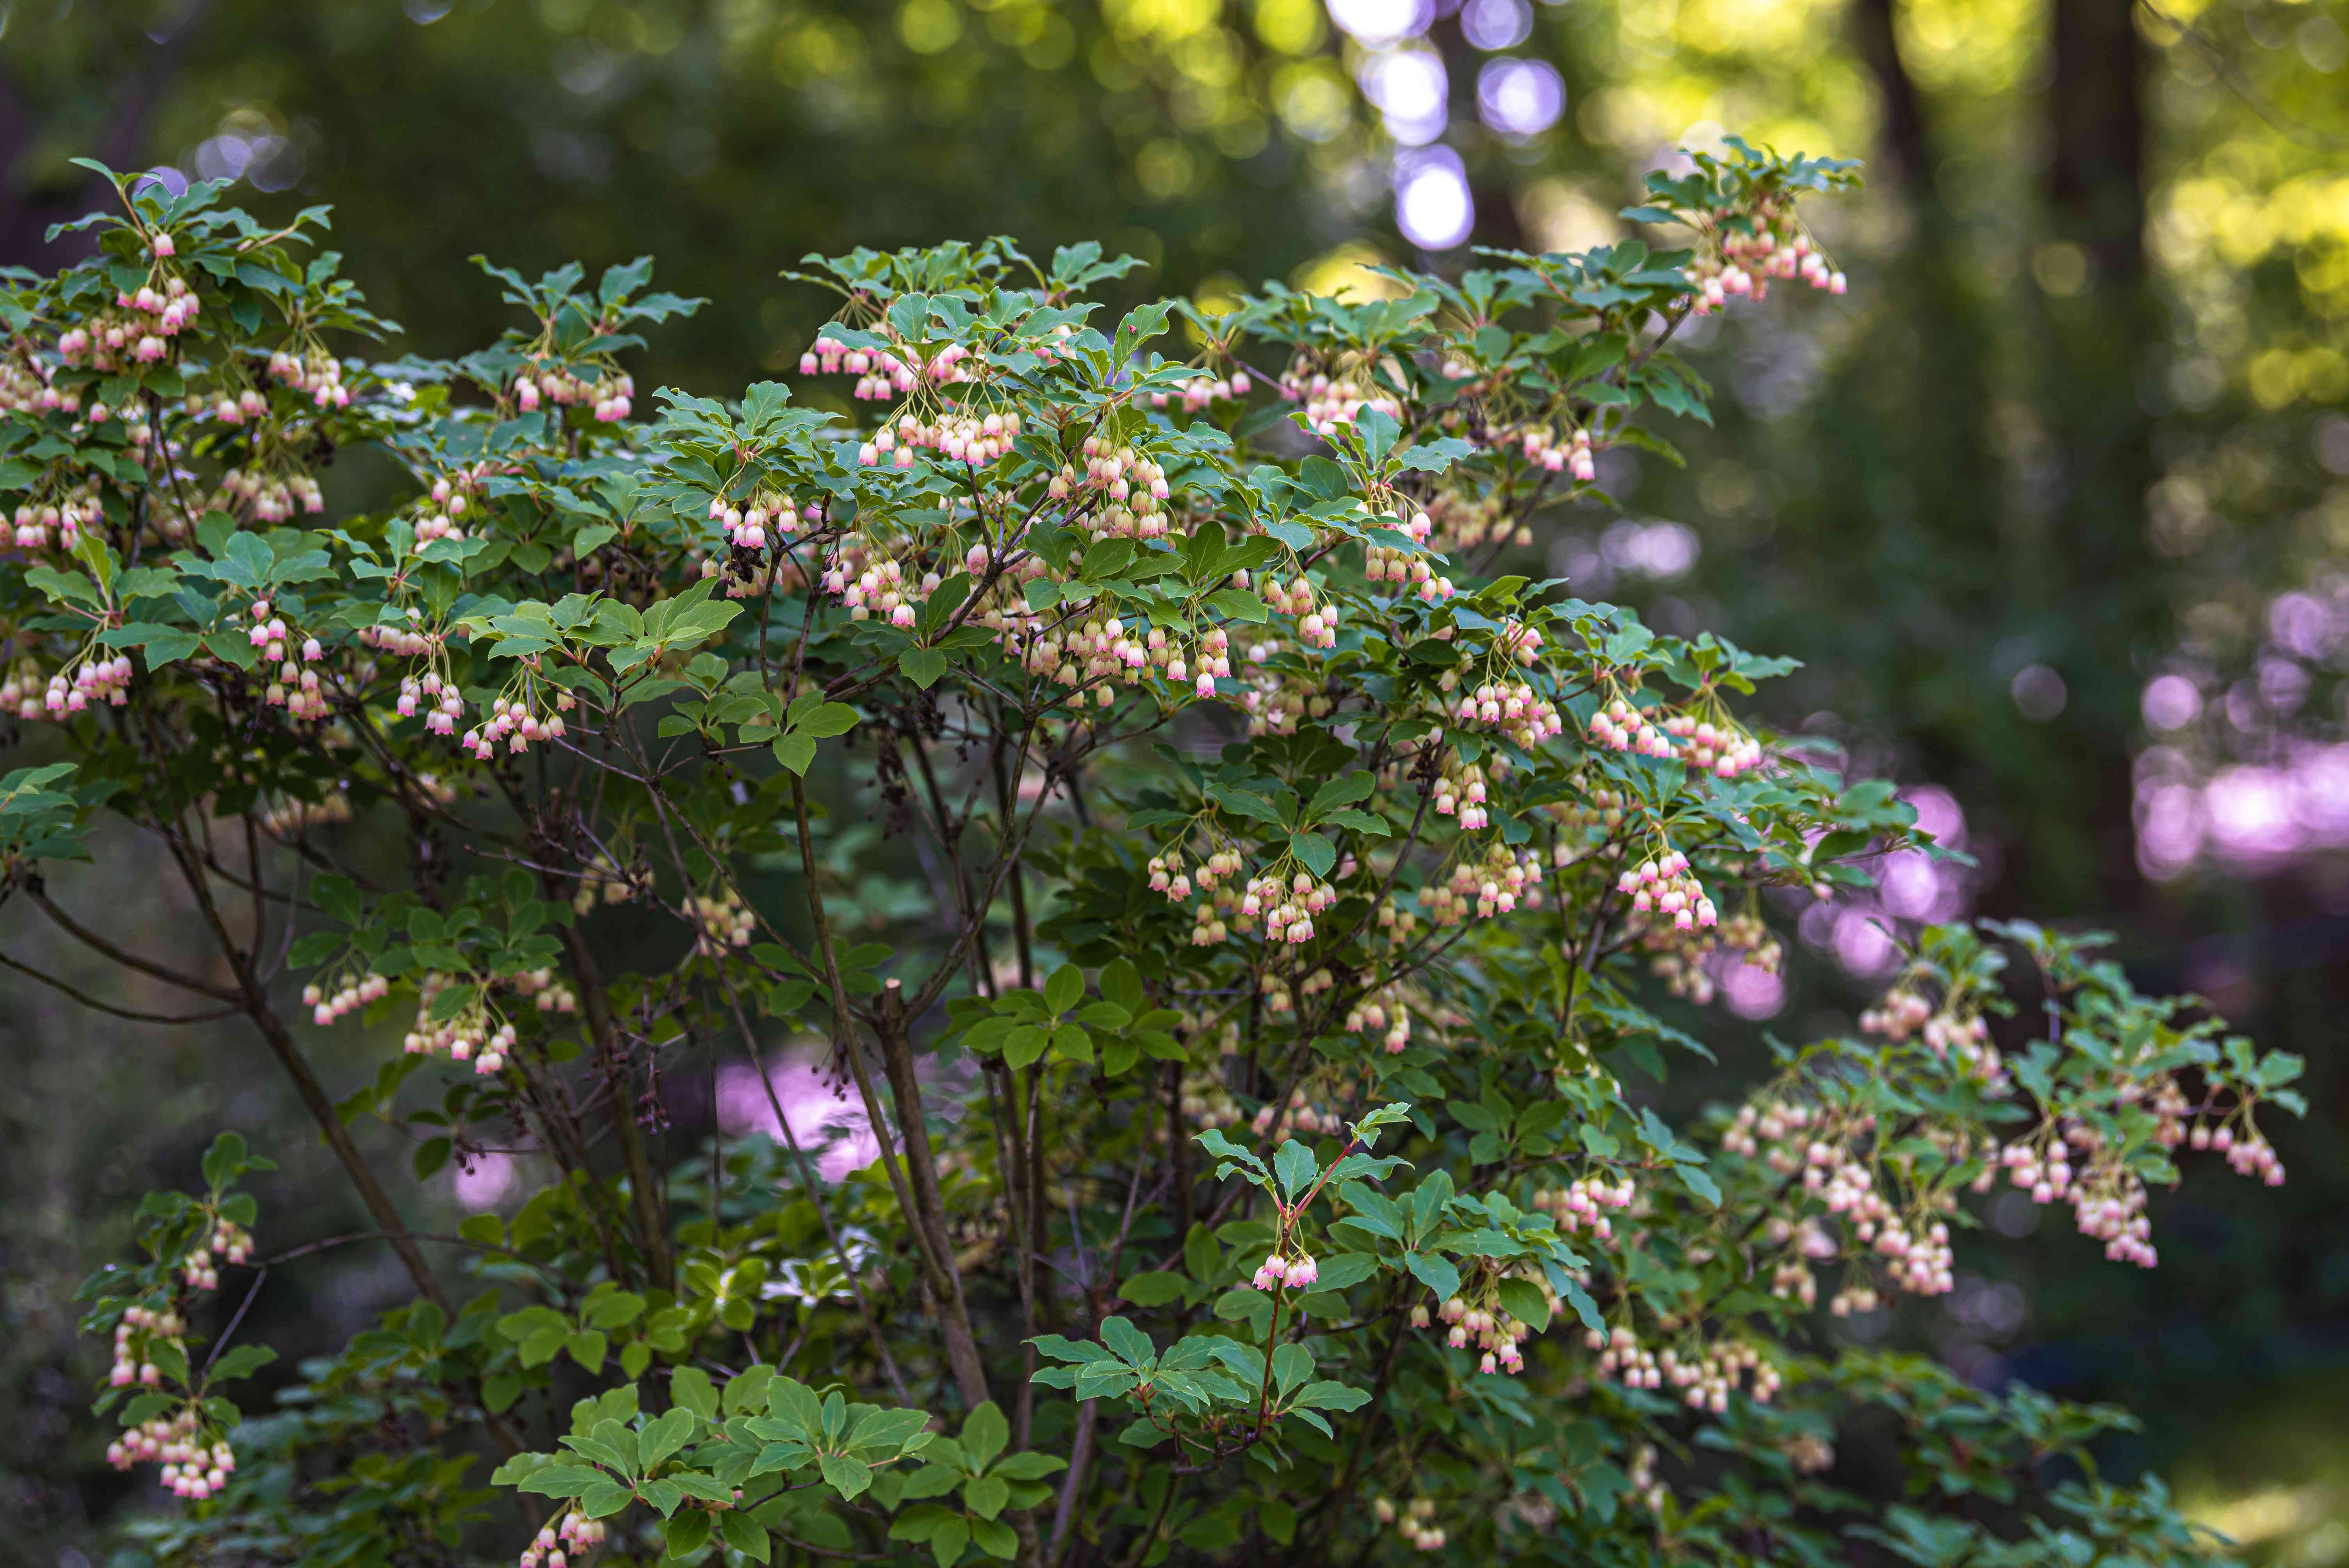 Red vein enkianthus shrub with thin branches and small green leaves surrounding small white flowers